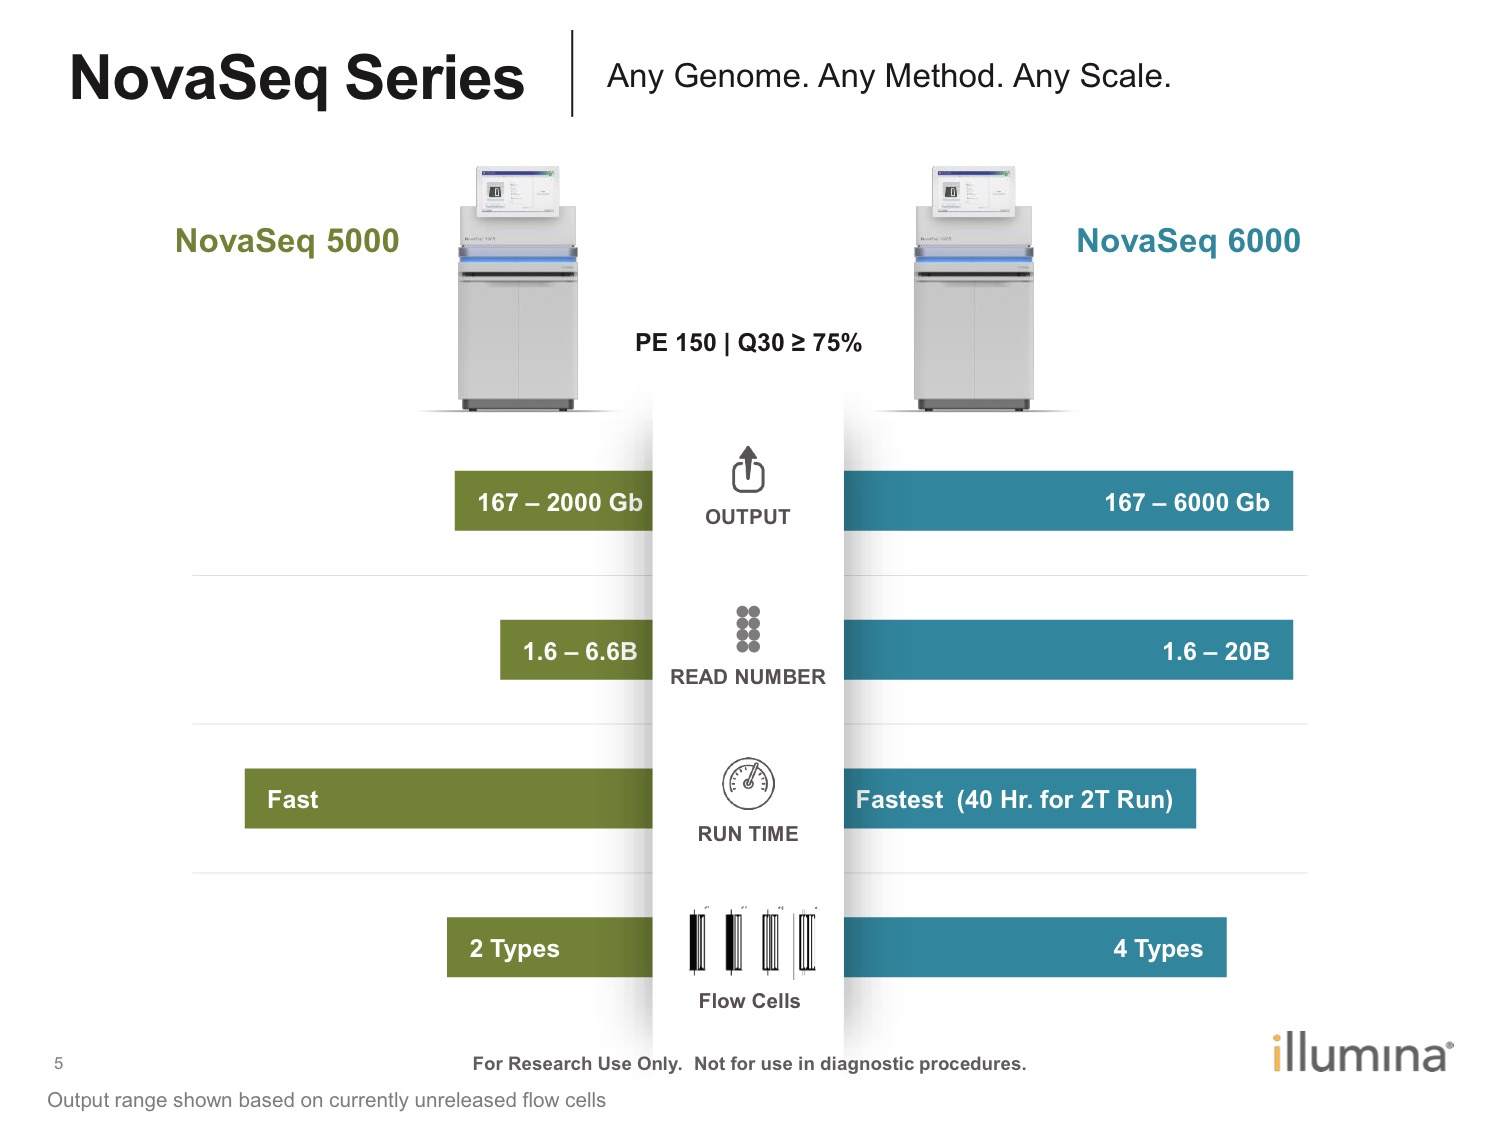 Should you buy a NovaSeq for your core lab - Enseqlopedia